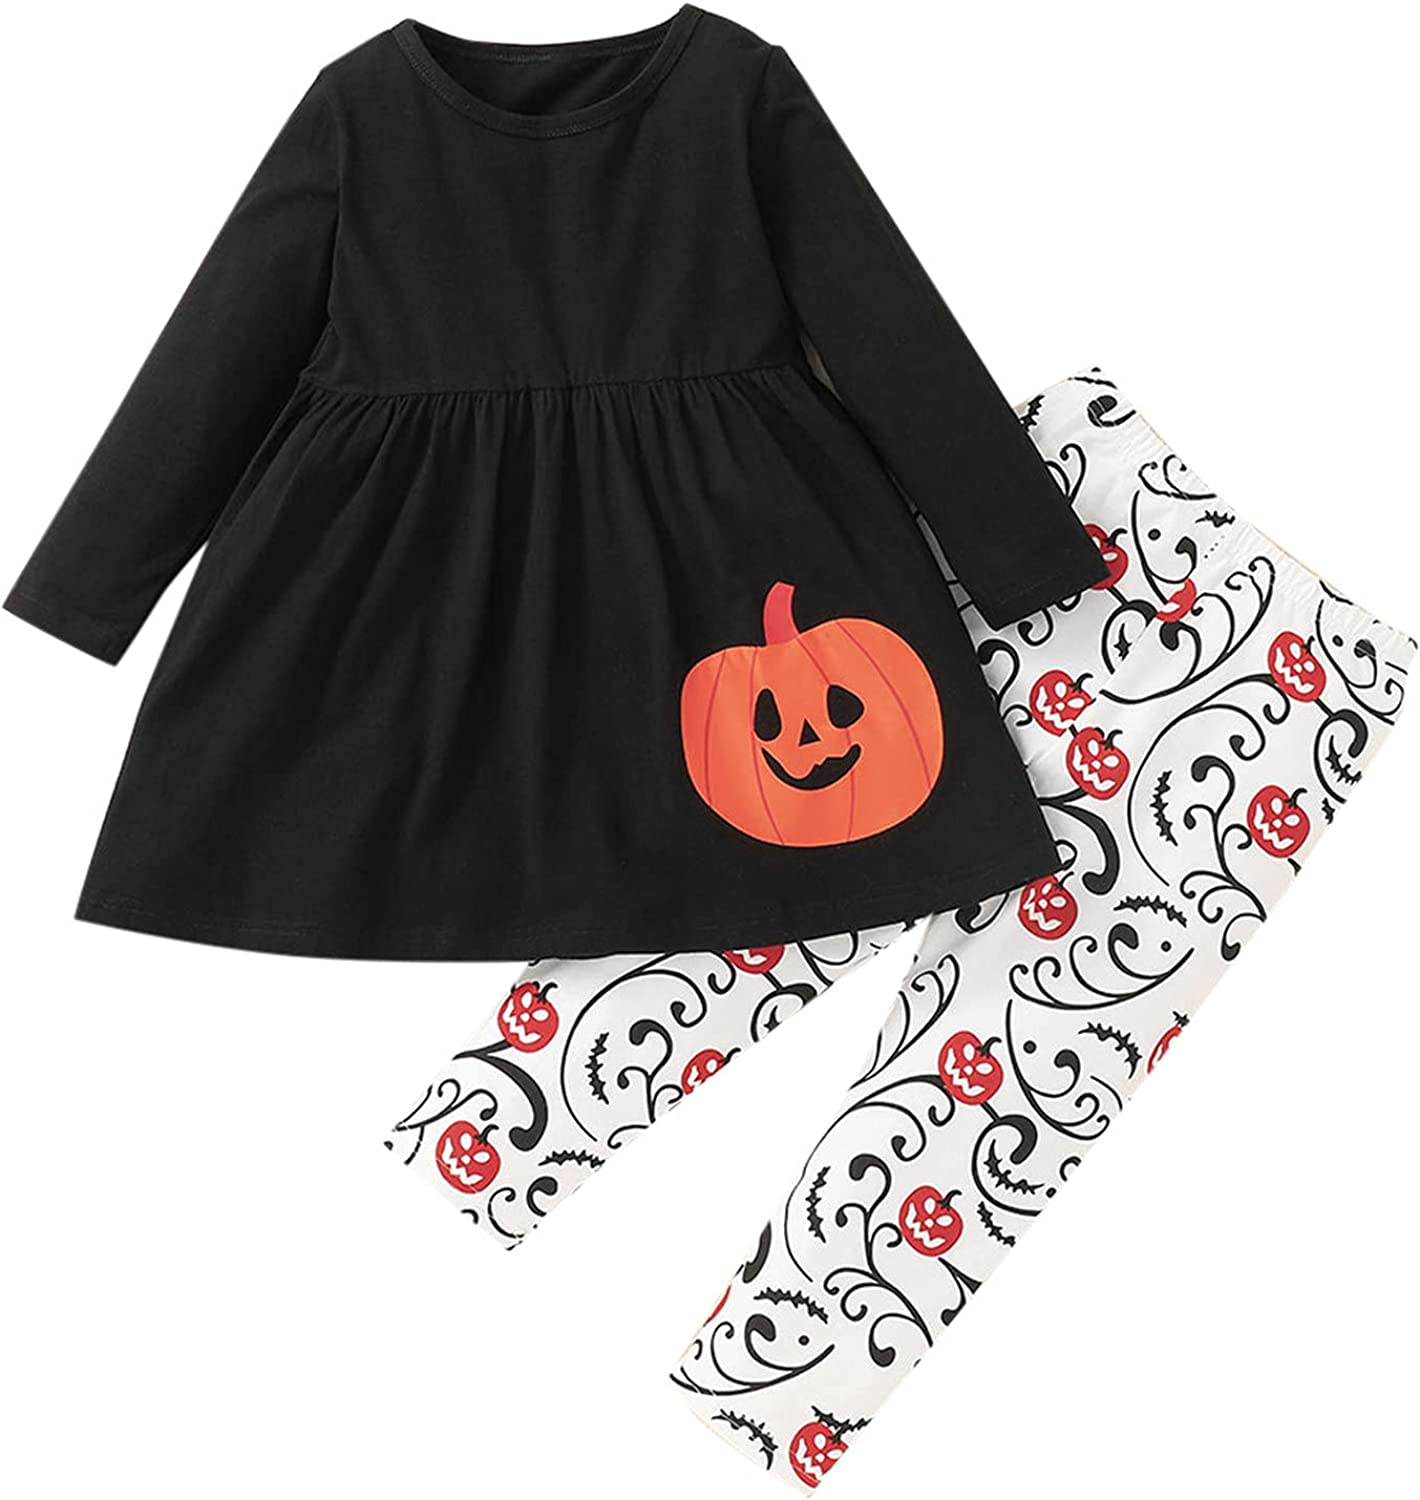 Jchen Halloween low-pricing Outfits for Girls Pieces Sets 2021 spring and summer new Pumpkin 3 Cartoon